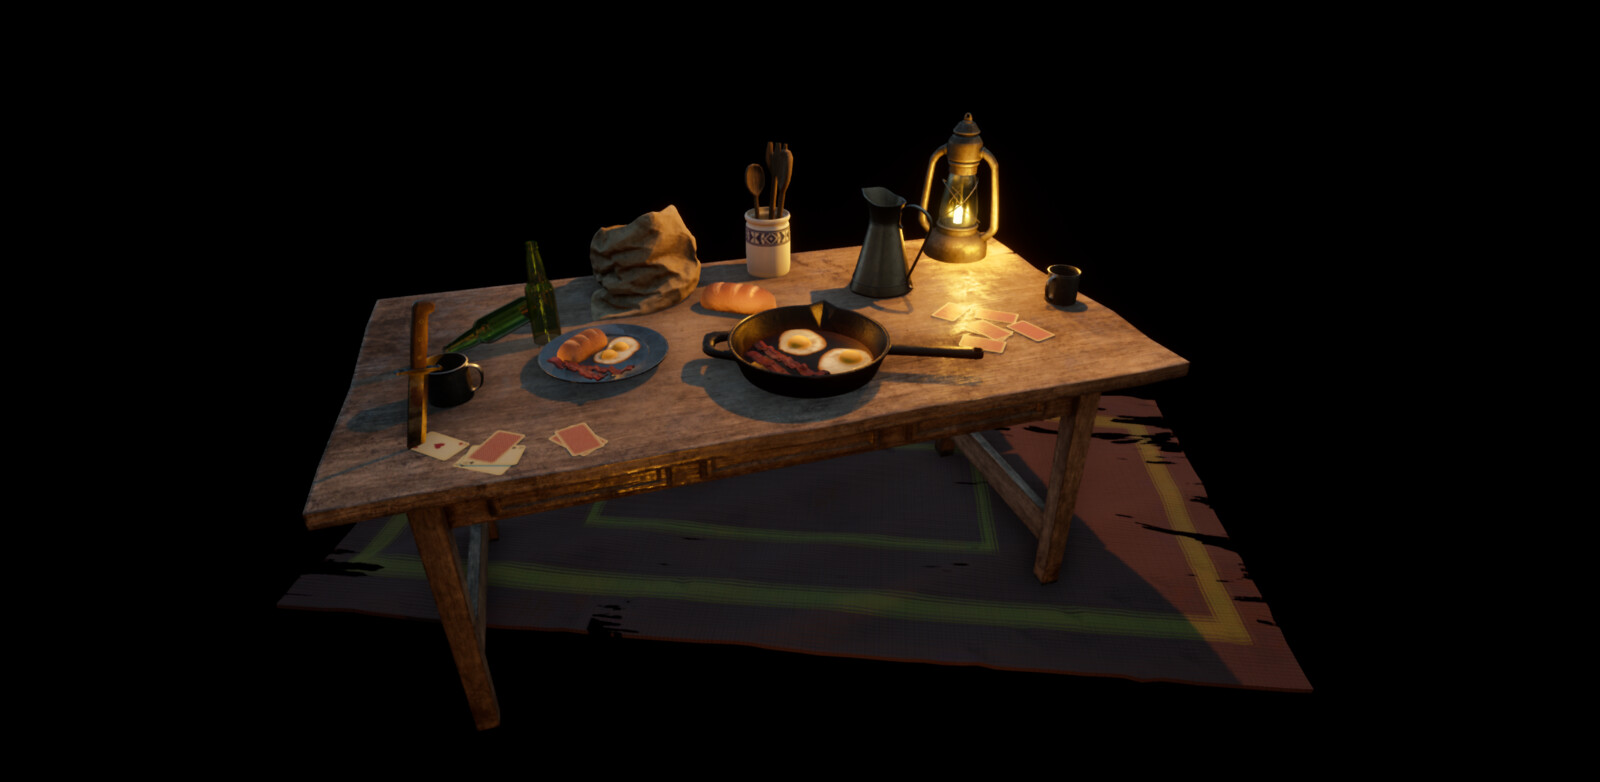 A small diorama of a prop set up from the scene. I had a lot of fun making the breakfast elements!